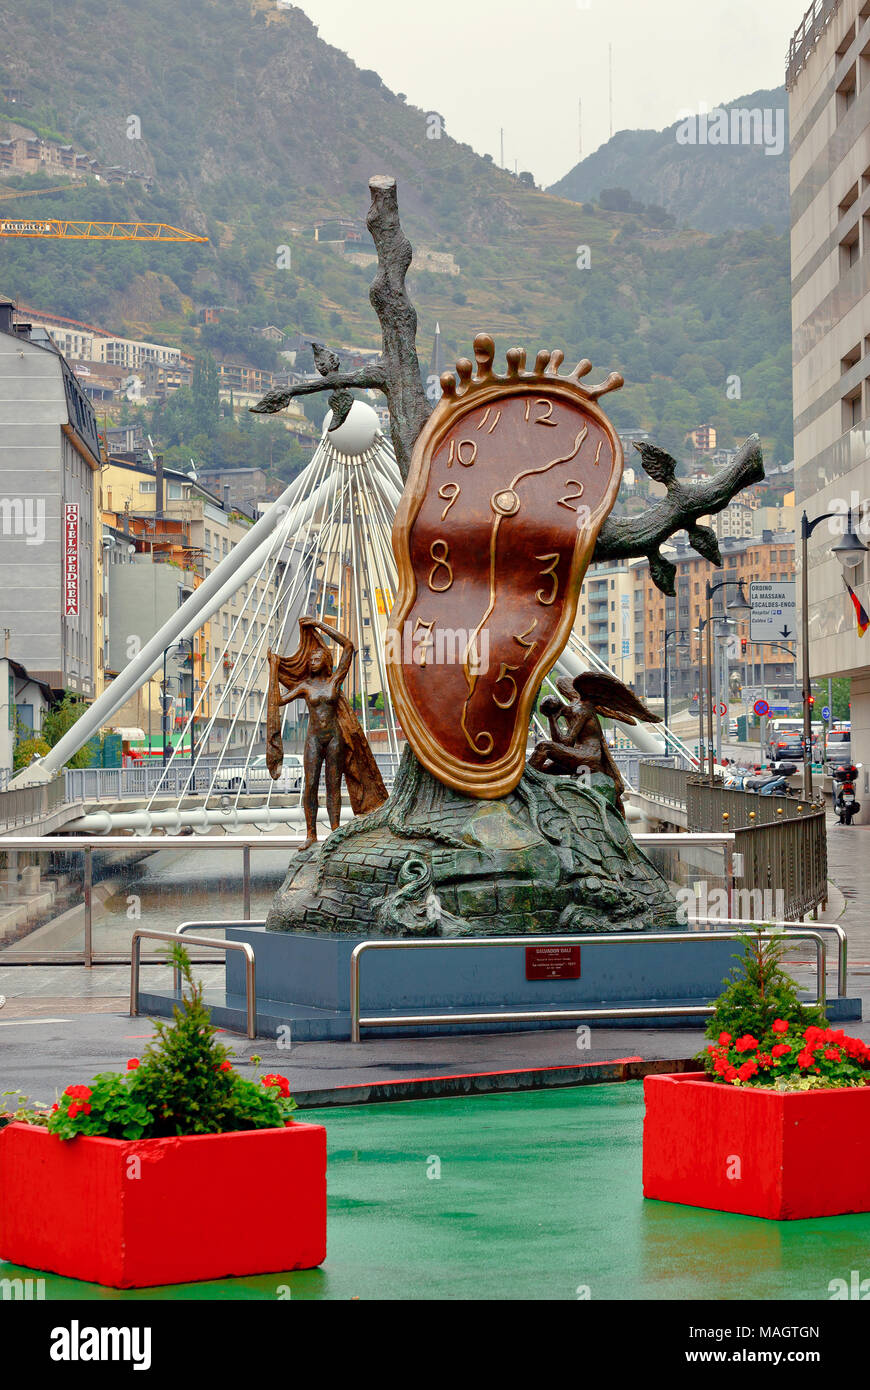 Cityscape with bronze sculpture 'Nobility of Time', located on shopping street in capital city. Andorra la Vella, Andorra - Stock Image